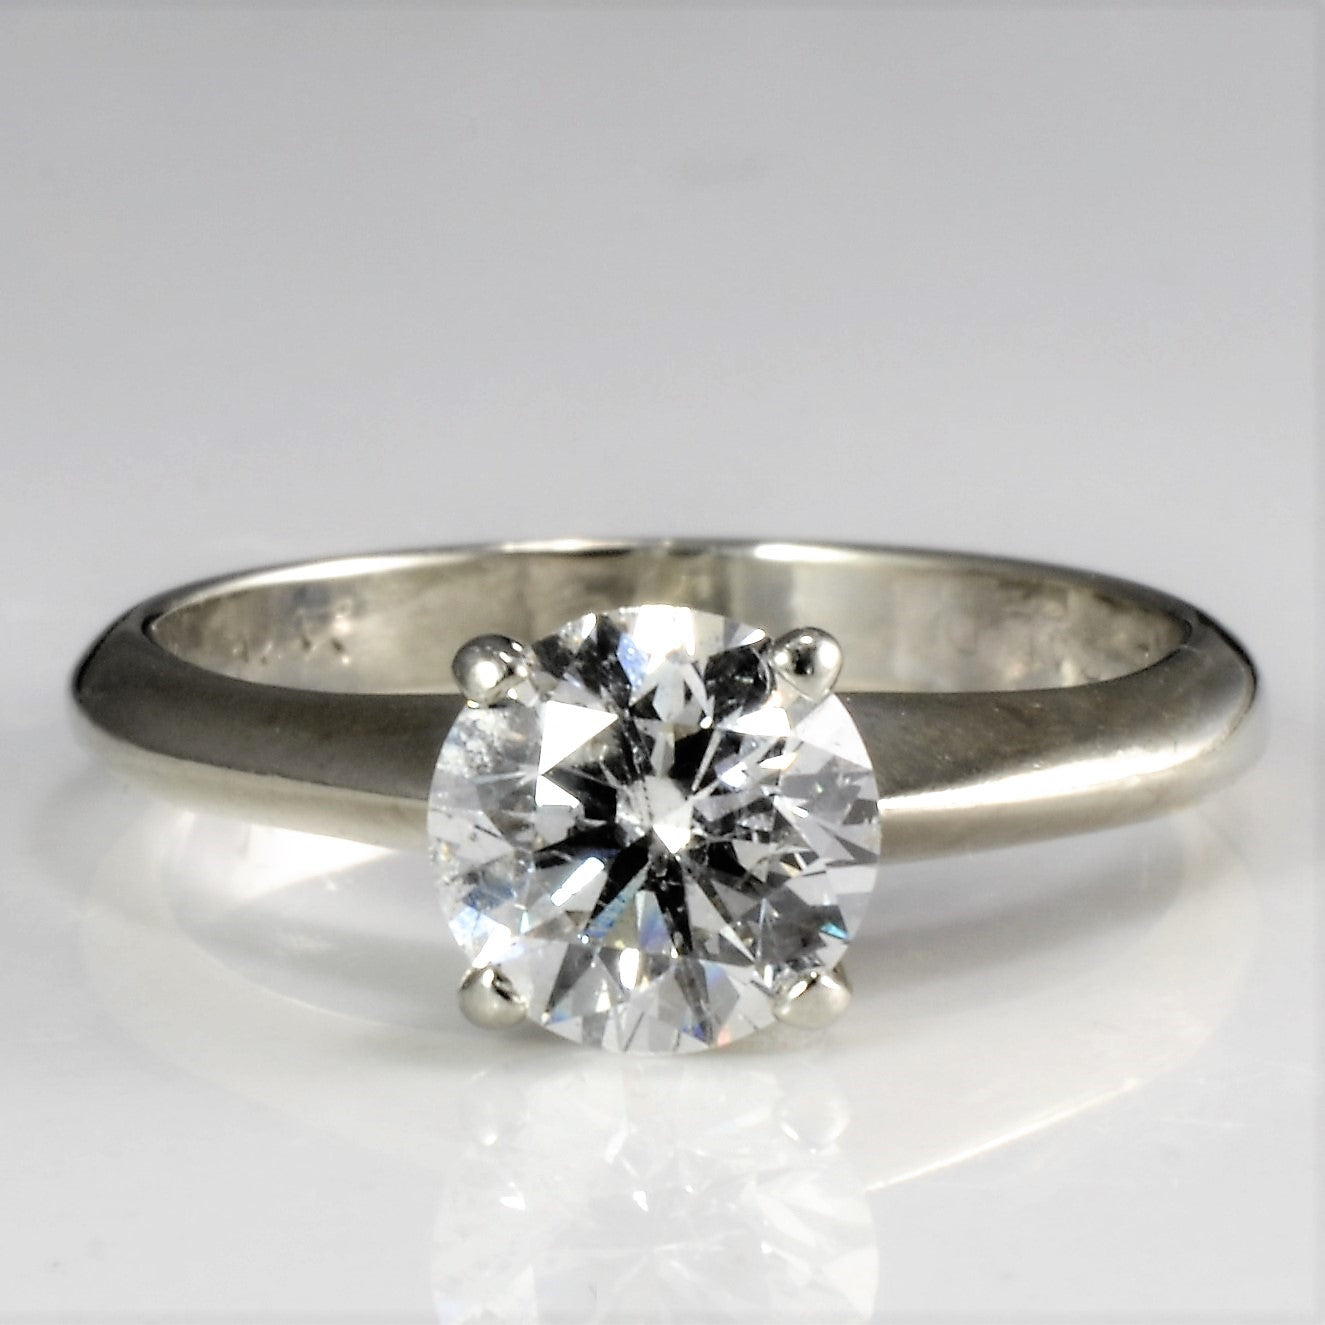 Four Prong Solitaire Diamond Engagement Ring | 0.90 ct, SZ 4.5 |